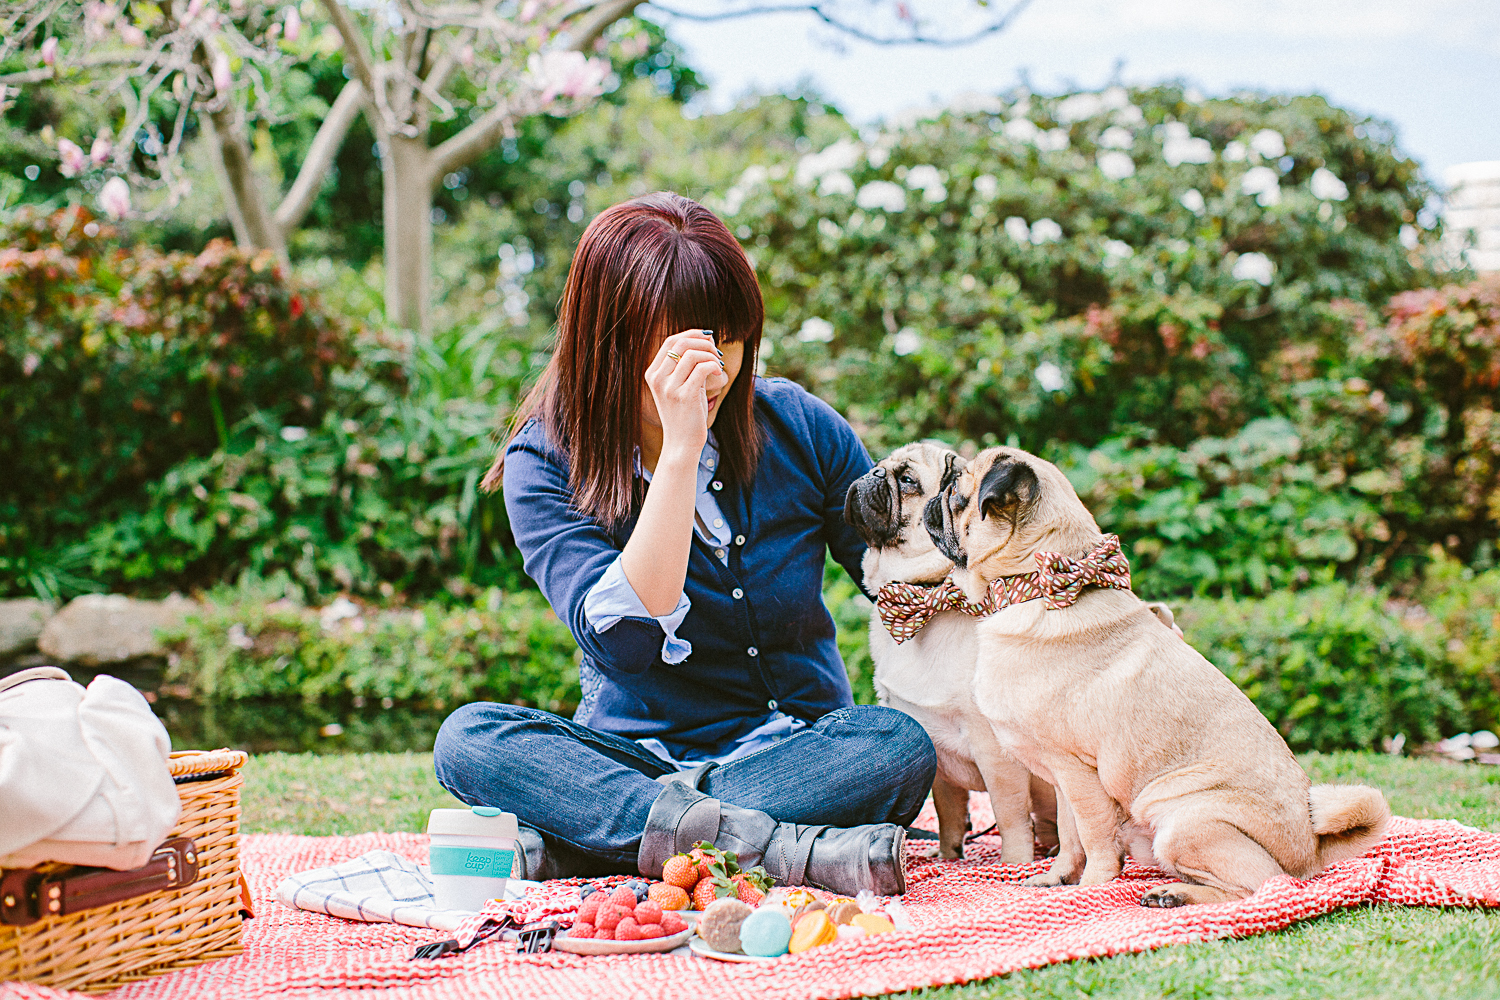 twoguineapigs_pet_photography_oh_jaffa_picnic_pugs_1500-15.jpg